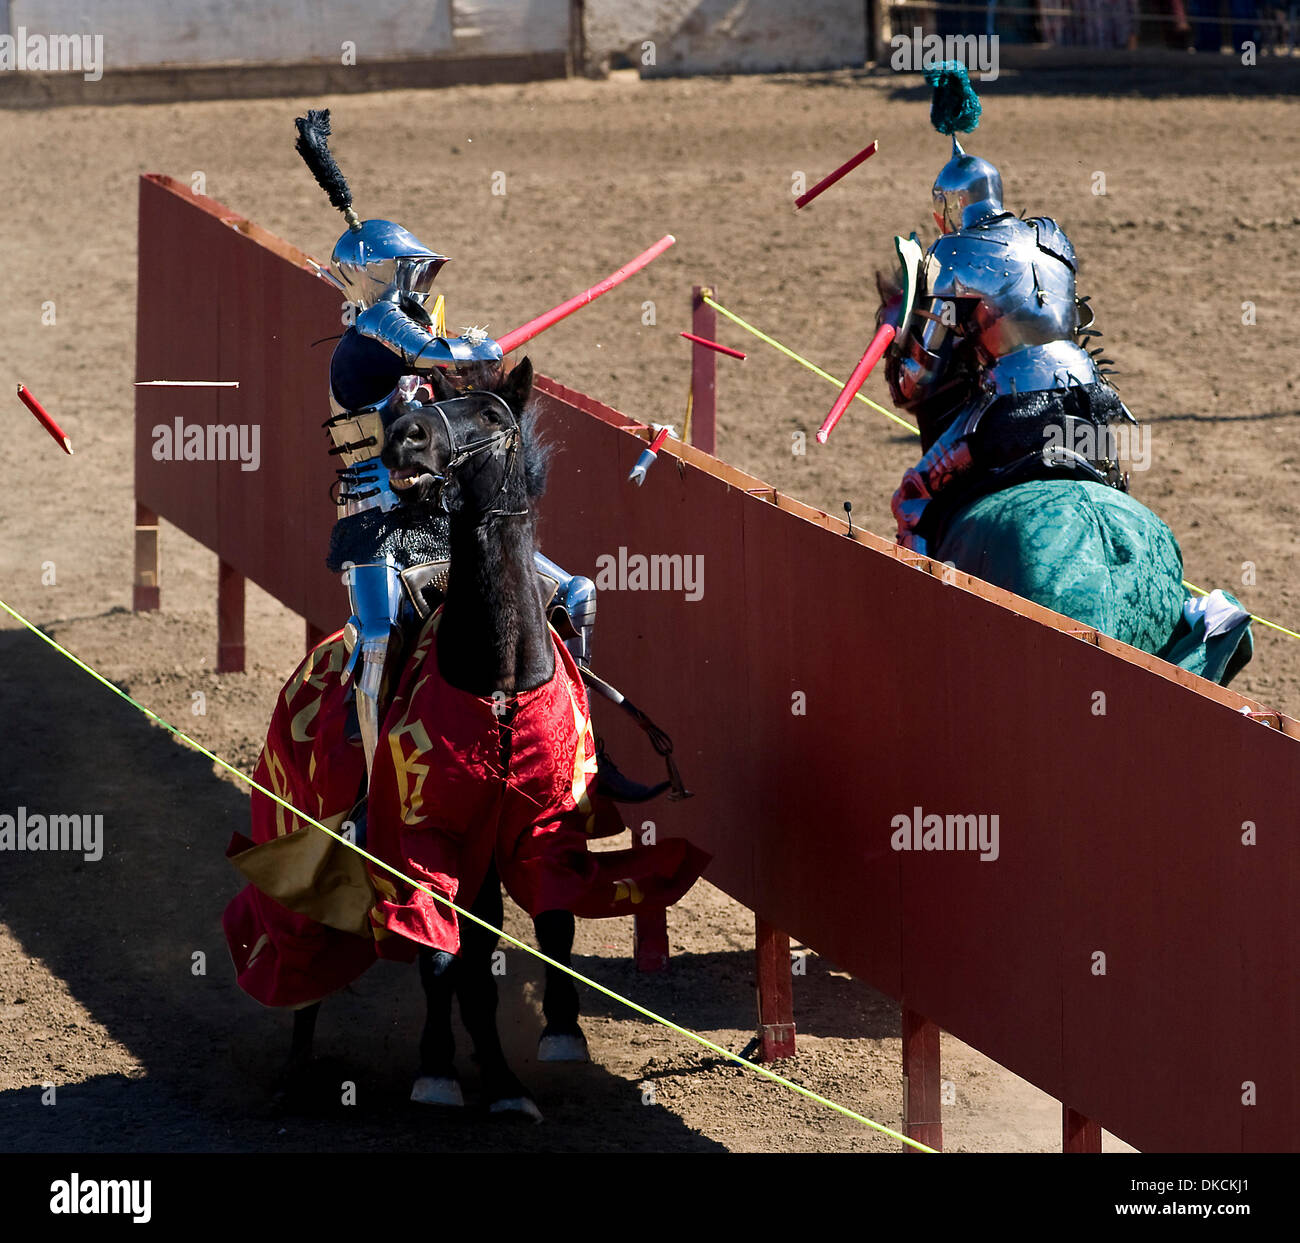 Oct. 23, 2011 - Poway, California, USA -  Breakaway lances shatter into shards as knights engage in a joust at the Stock Photo